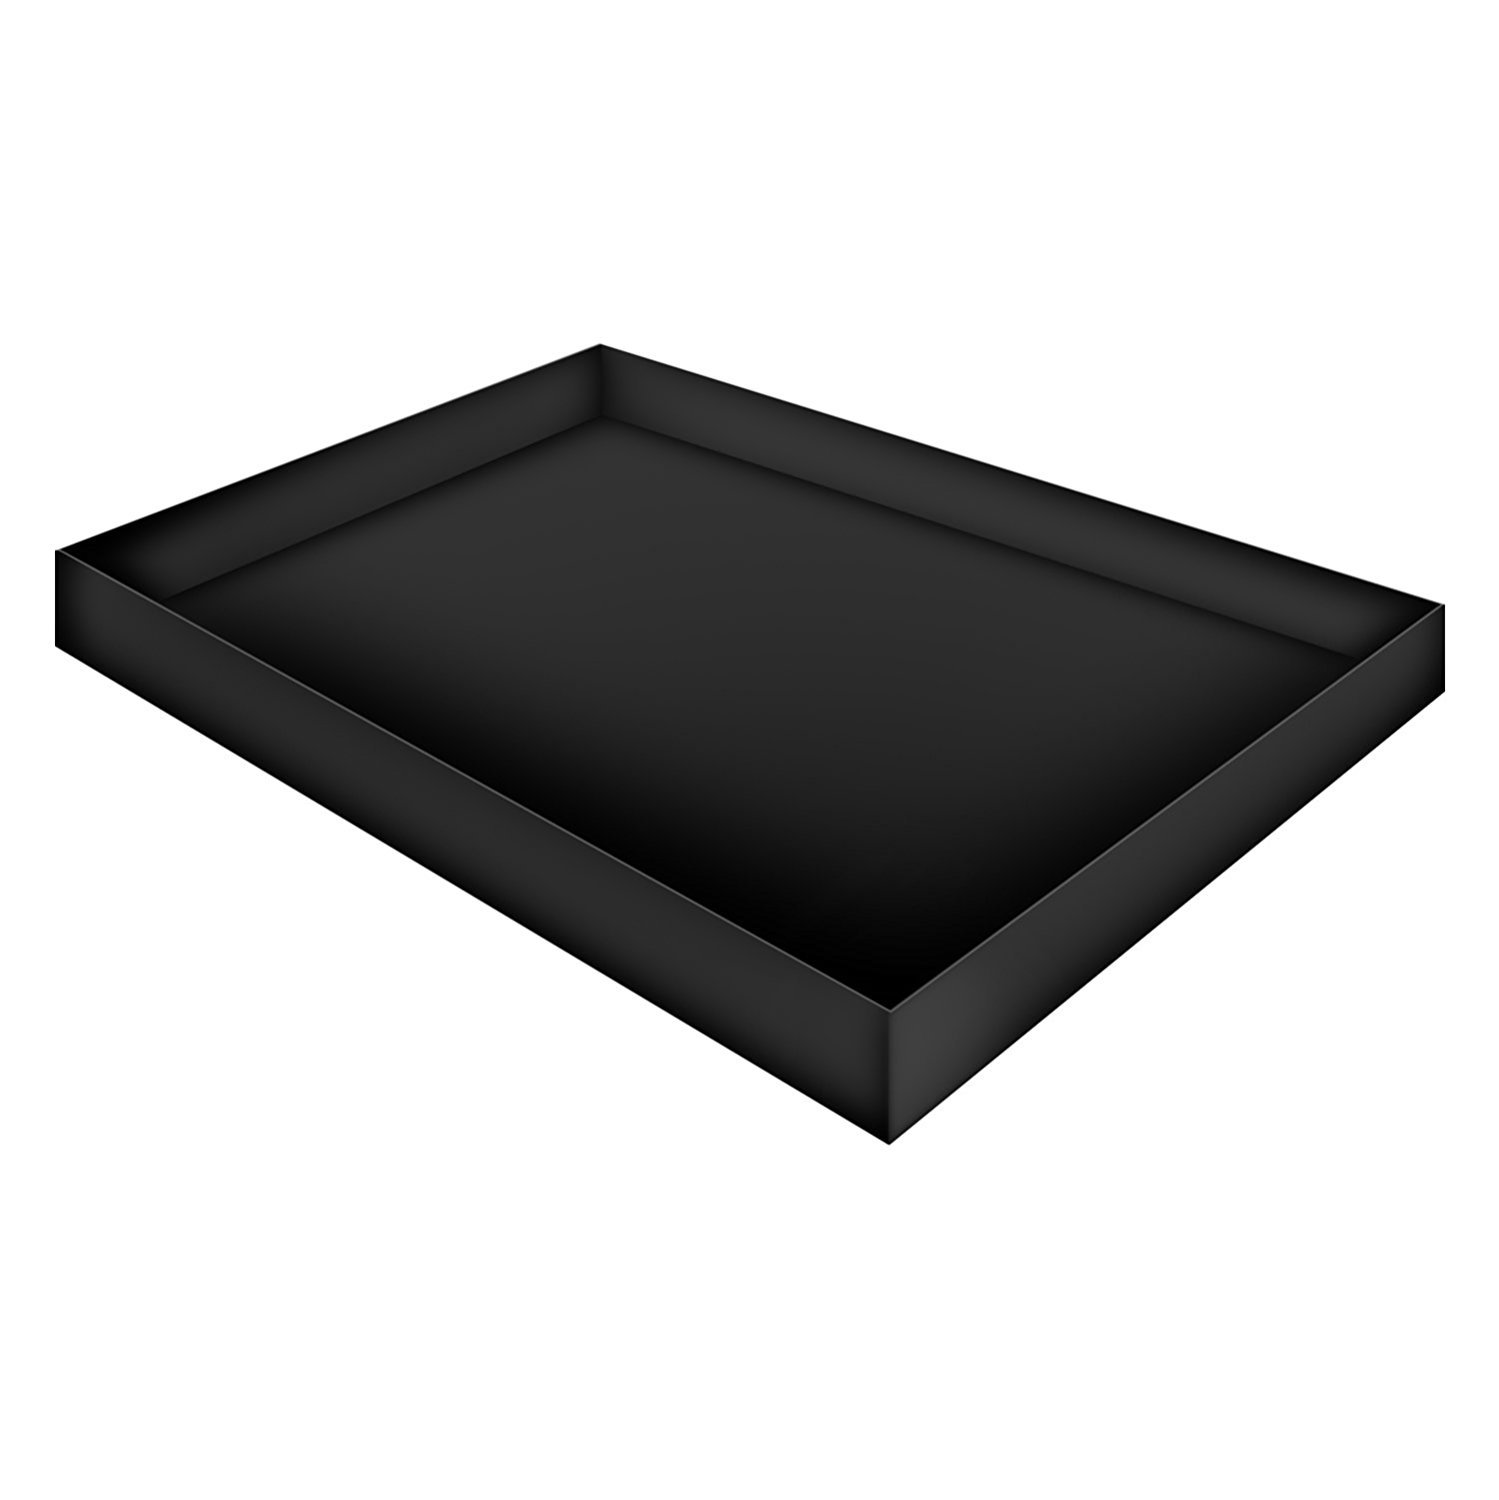 True Choice Hardside Waterbed Safety Liner (Queen Hardside, Standard)